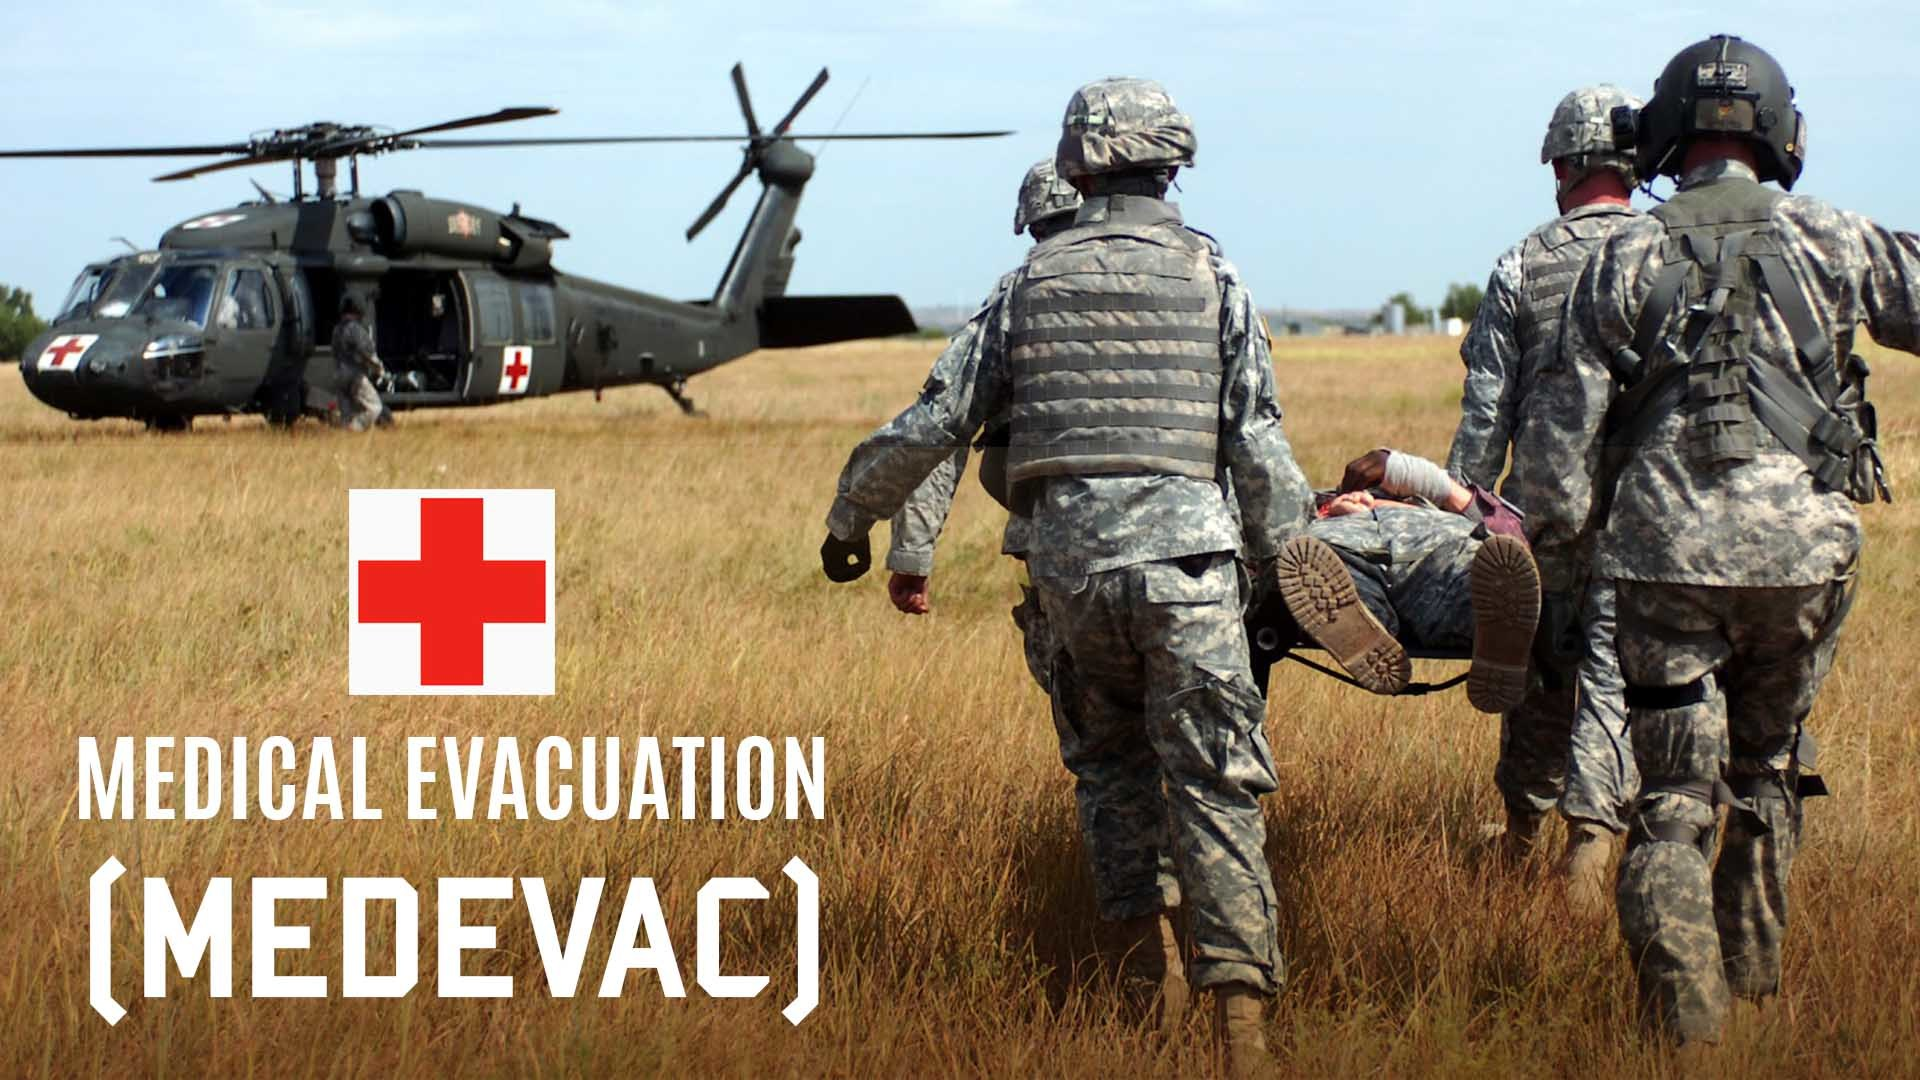 medevac evacuation Air medical services is a comprehensive term covering the  military organizations and nato refer to the former as medical evacuation (medevac) and to the latter .